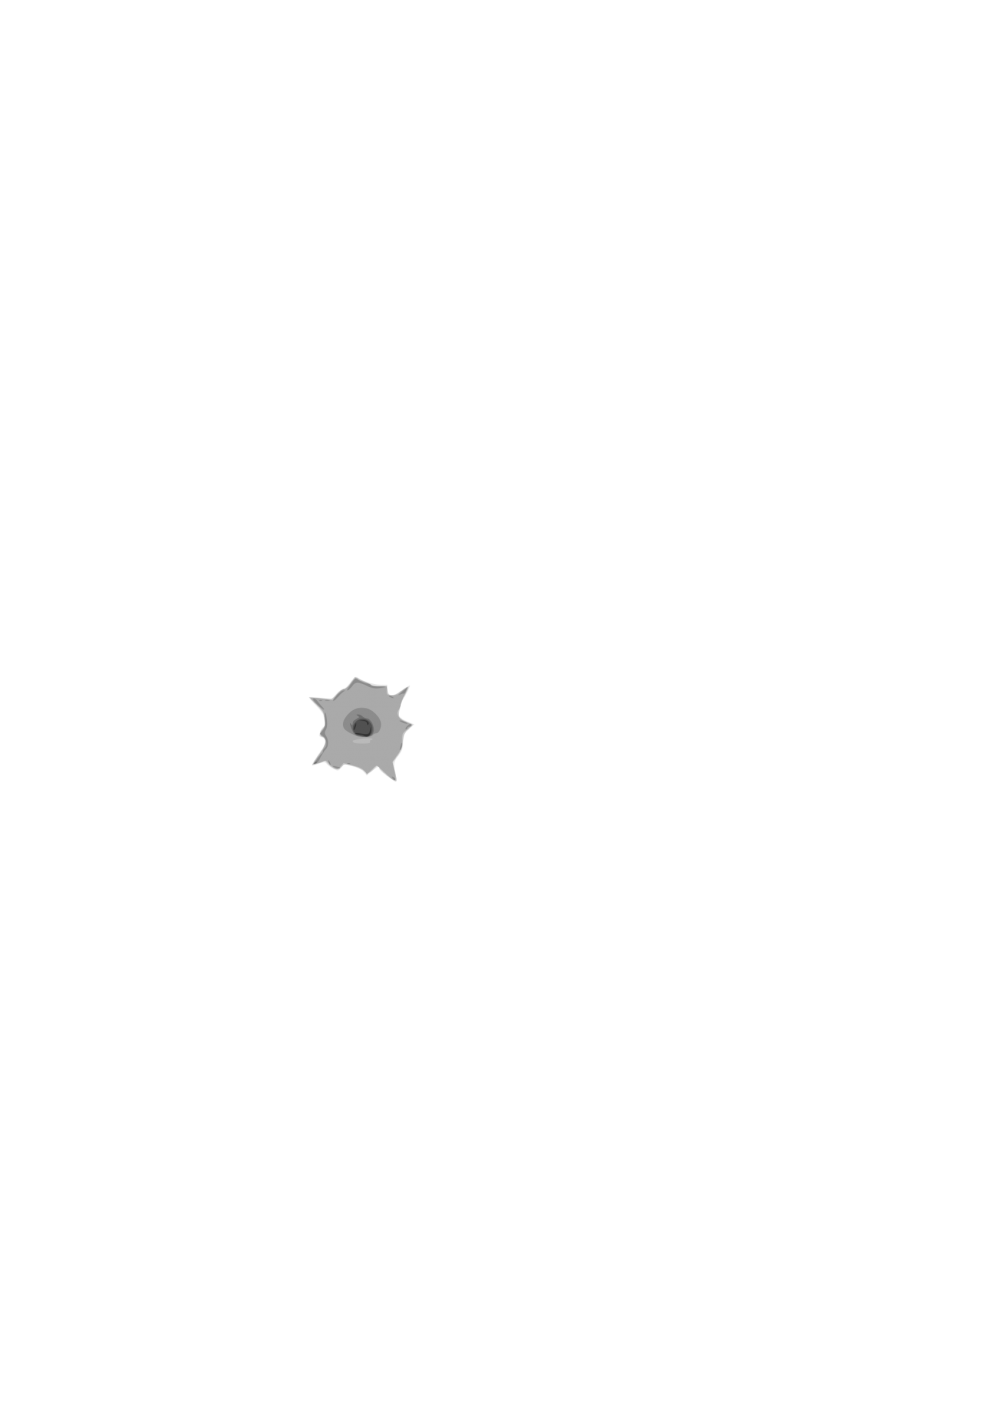 Bullet hole png css. Transparent images clipart icons